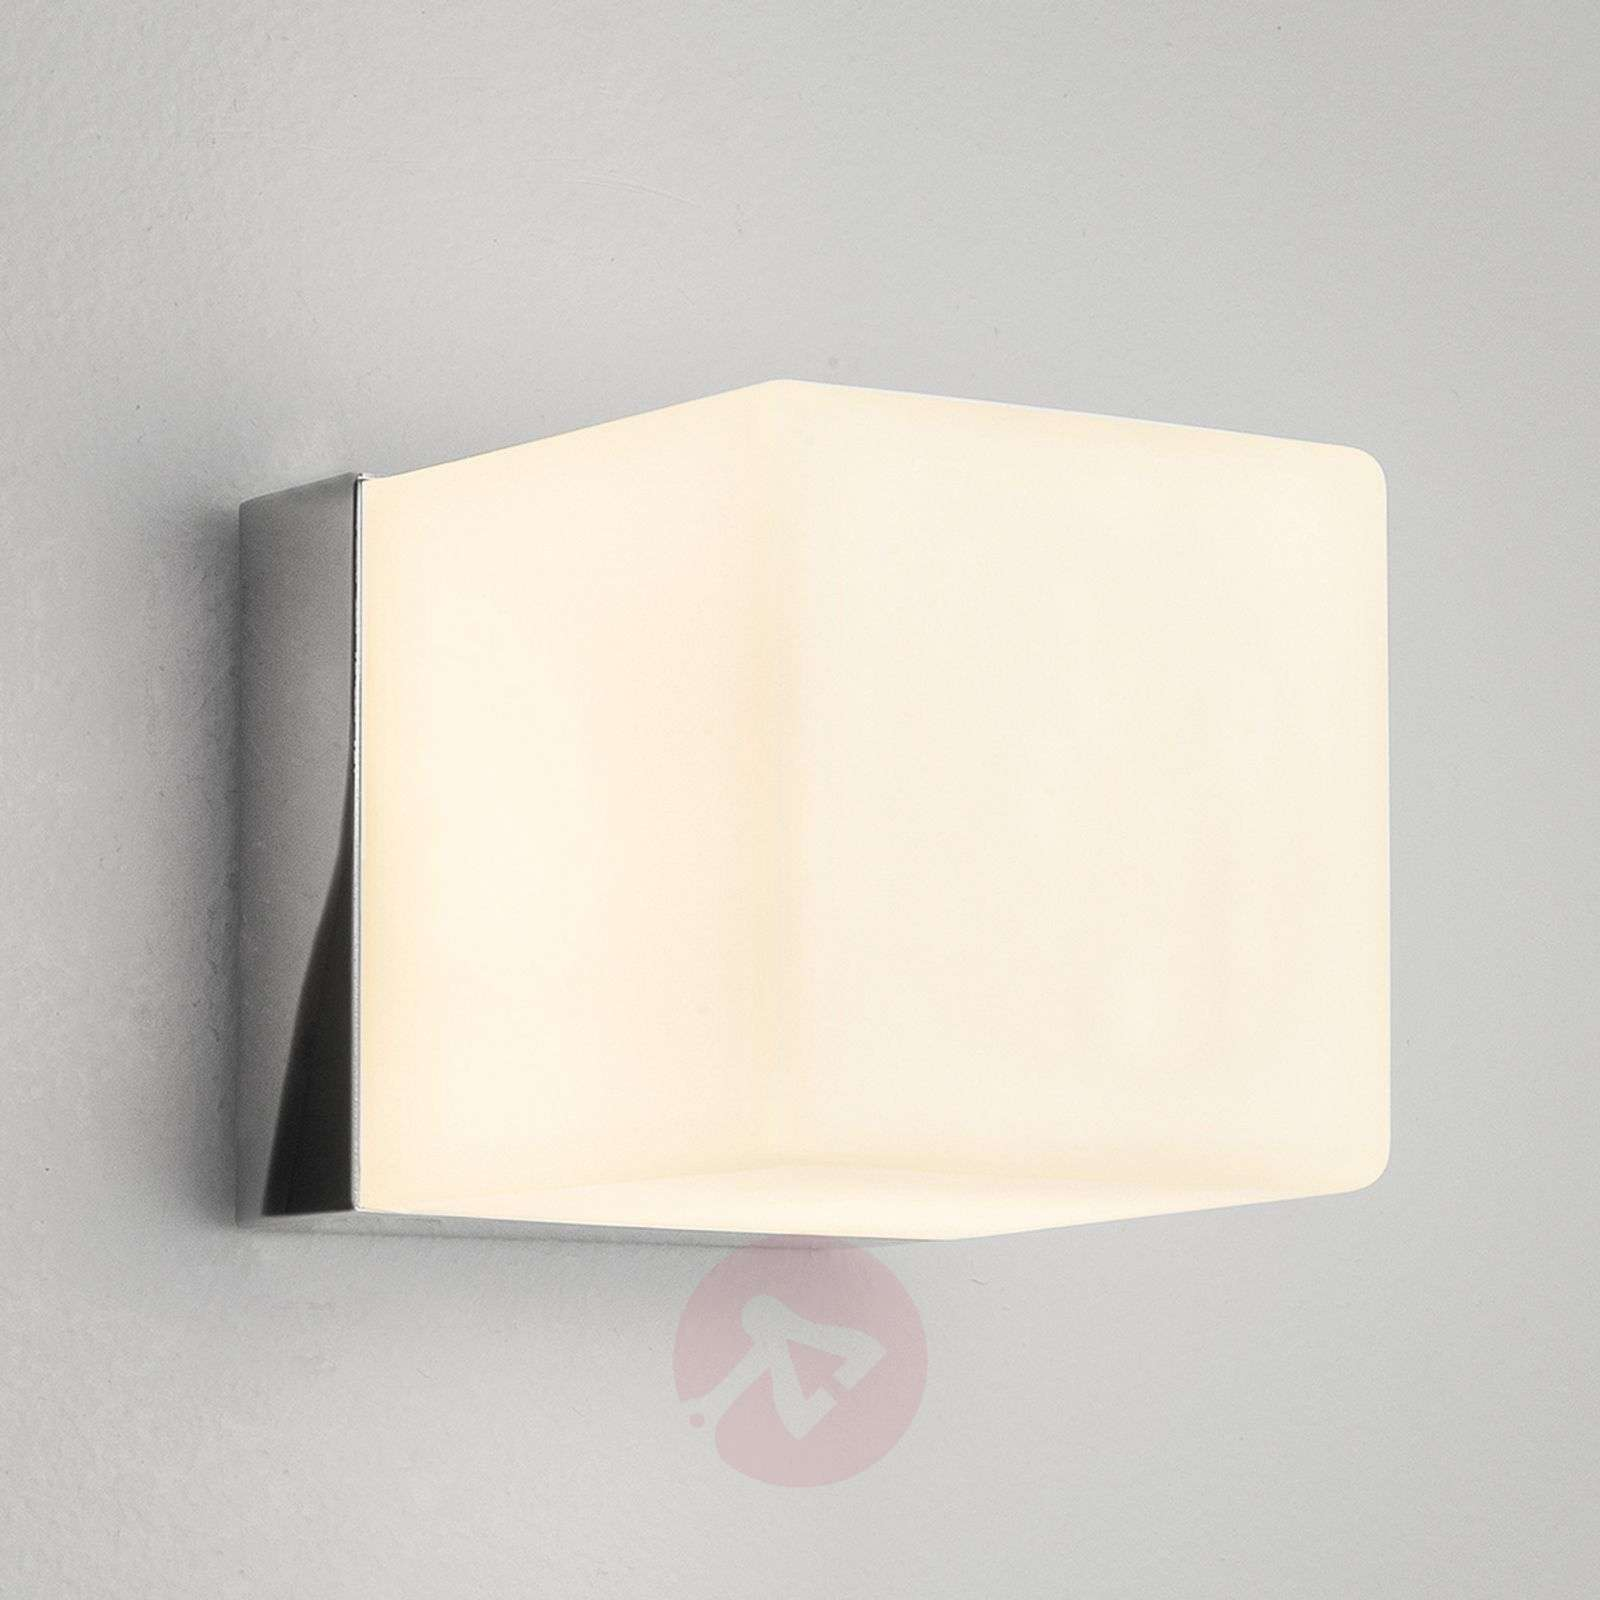 Cube wall light simple lights cube wall light simple 1020026 02 aloadofball Image collections